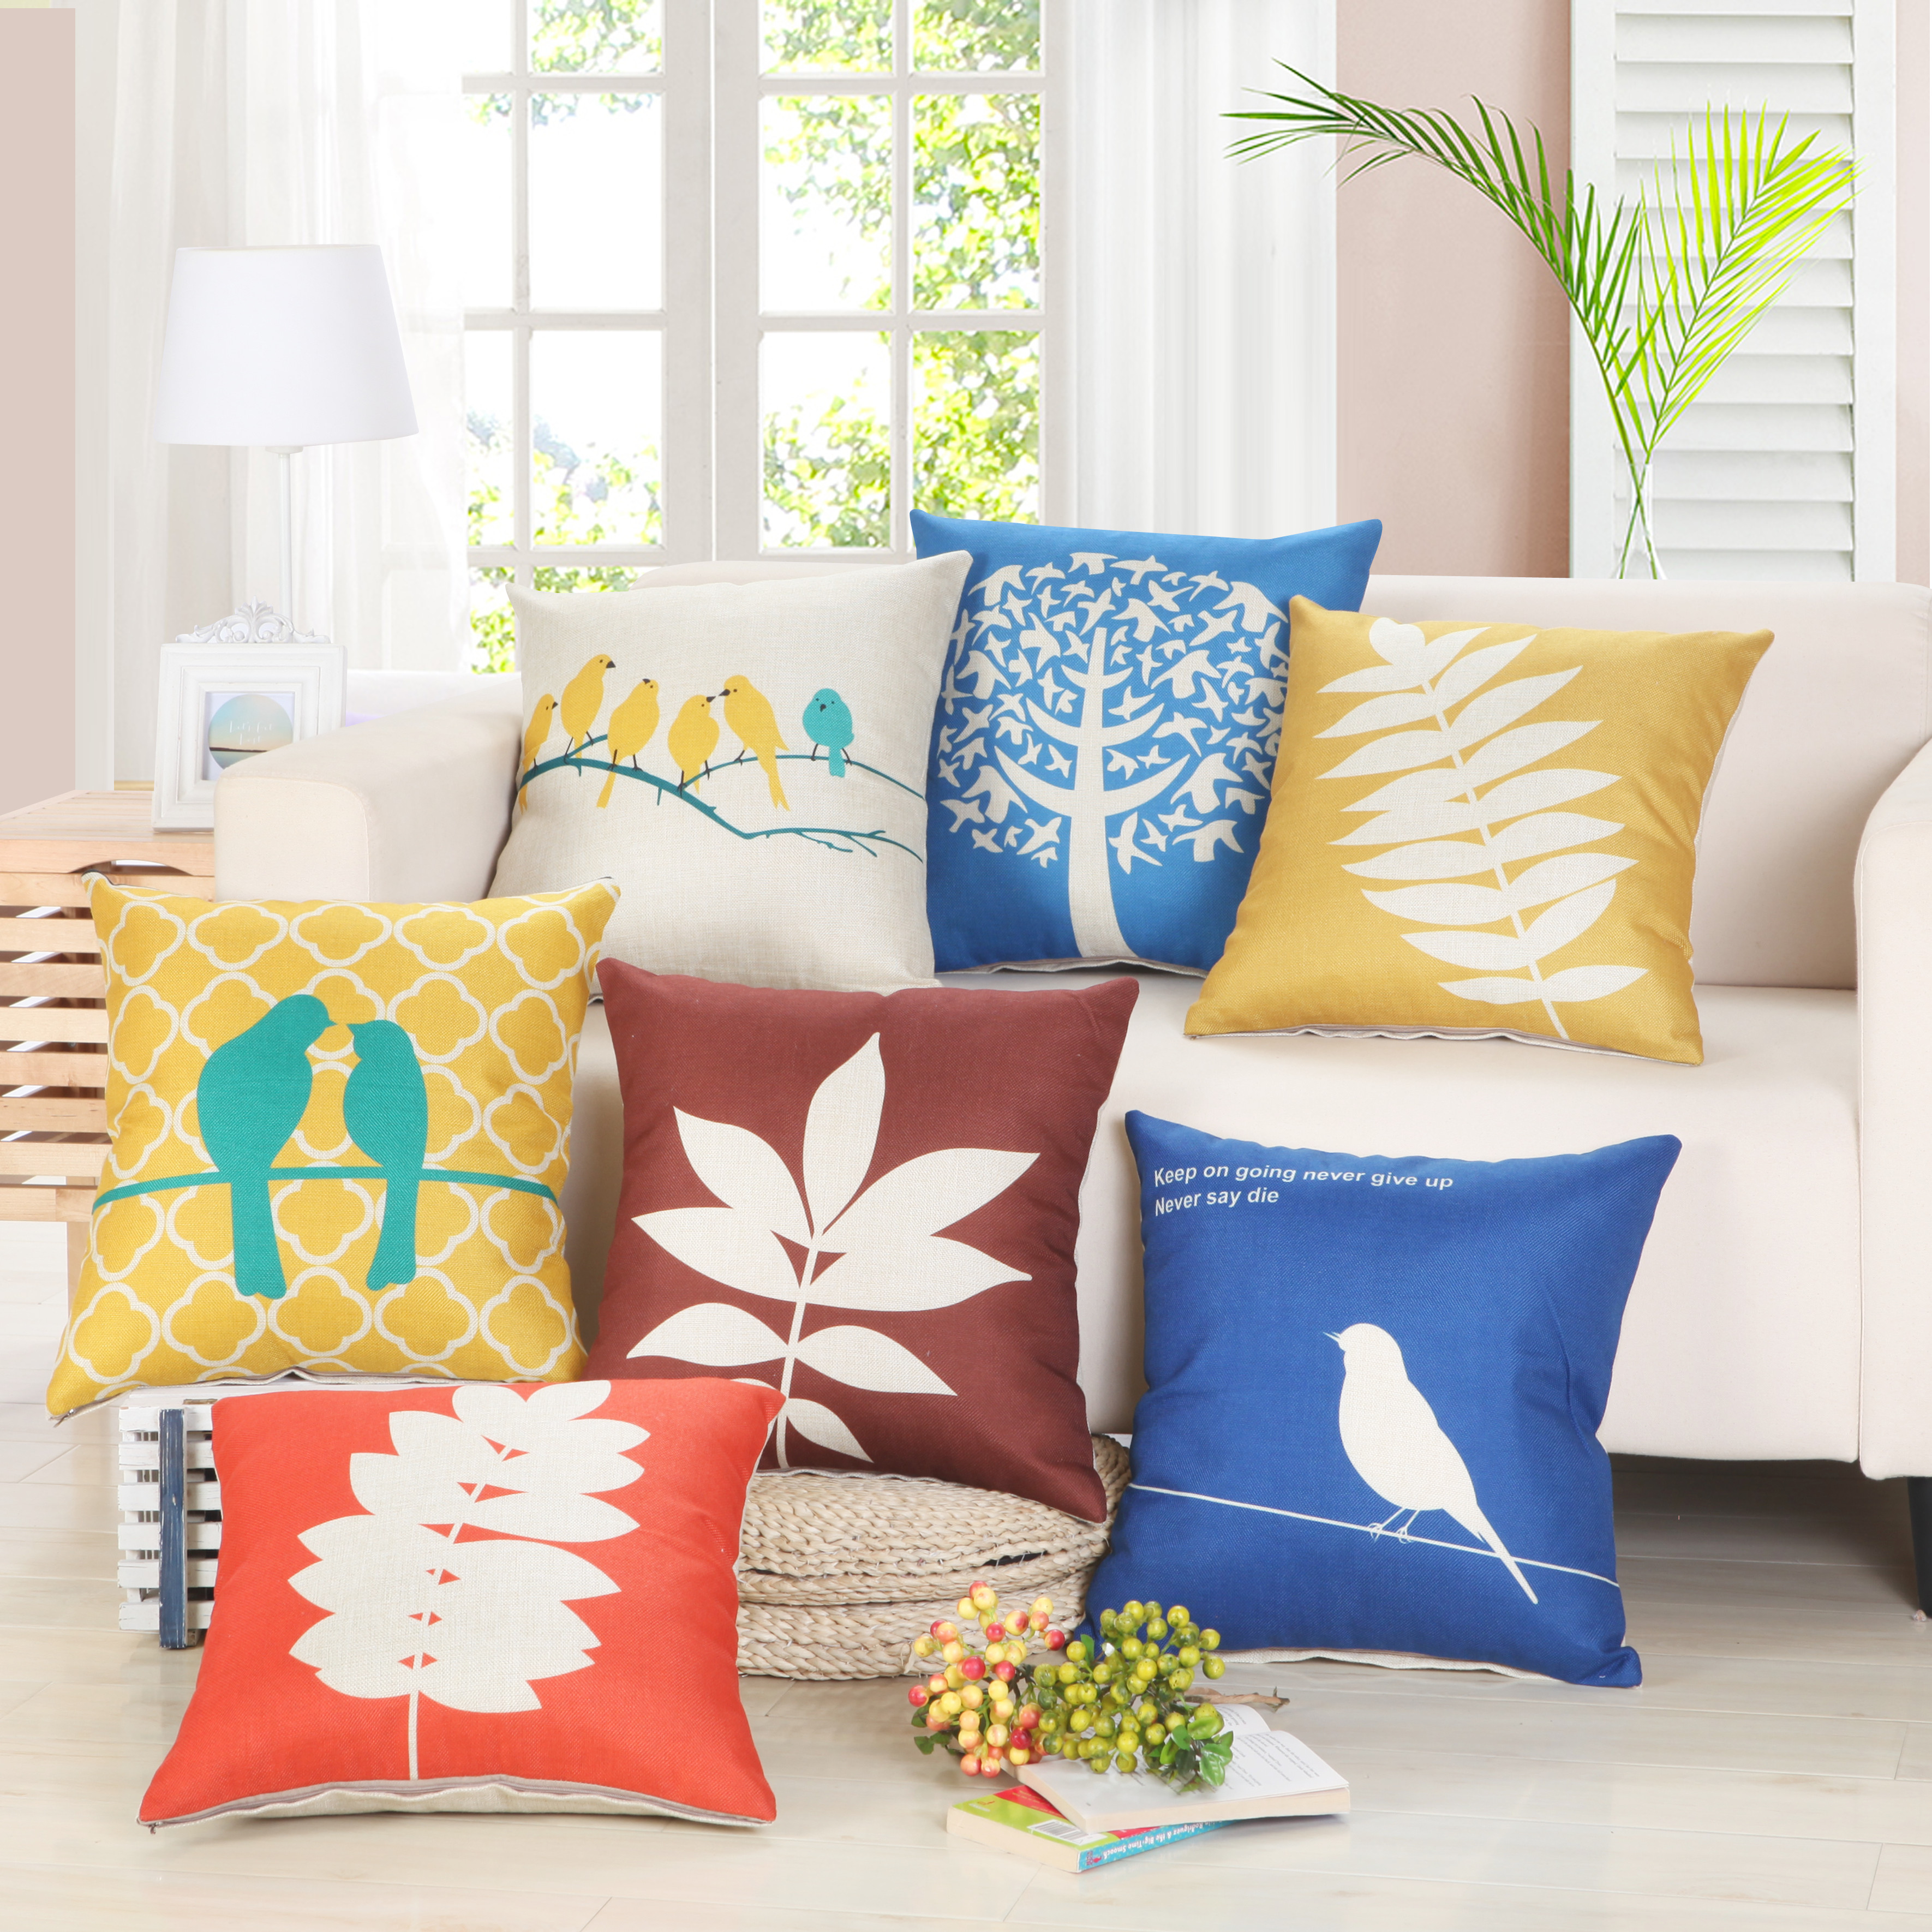 Decorative Pillows Without Covers : European Cushion Cover Without Stuff Polyster Home Decorative Throw Pillows Cases Sofa Car Seat ...